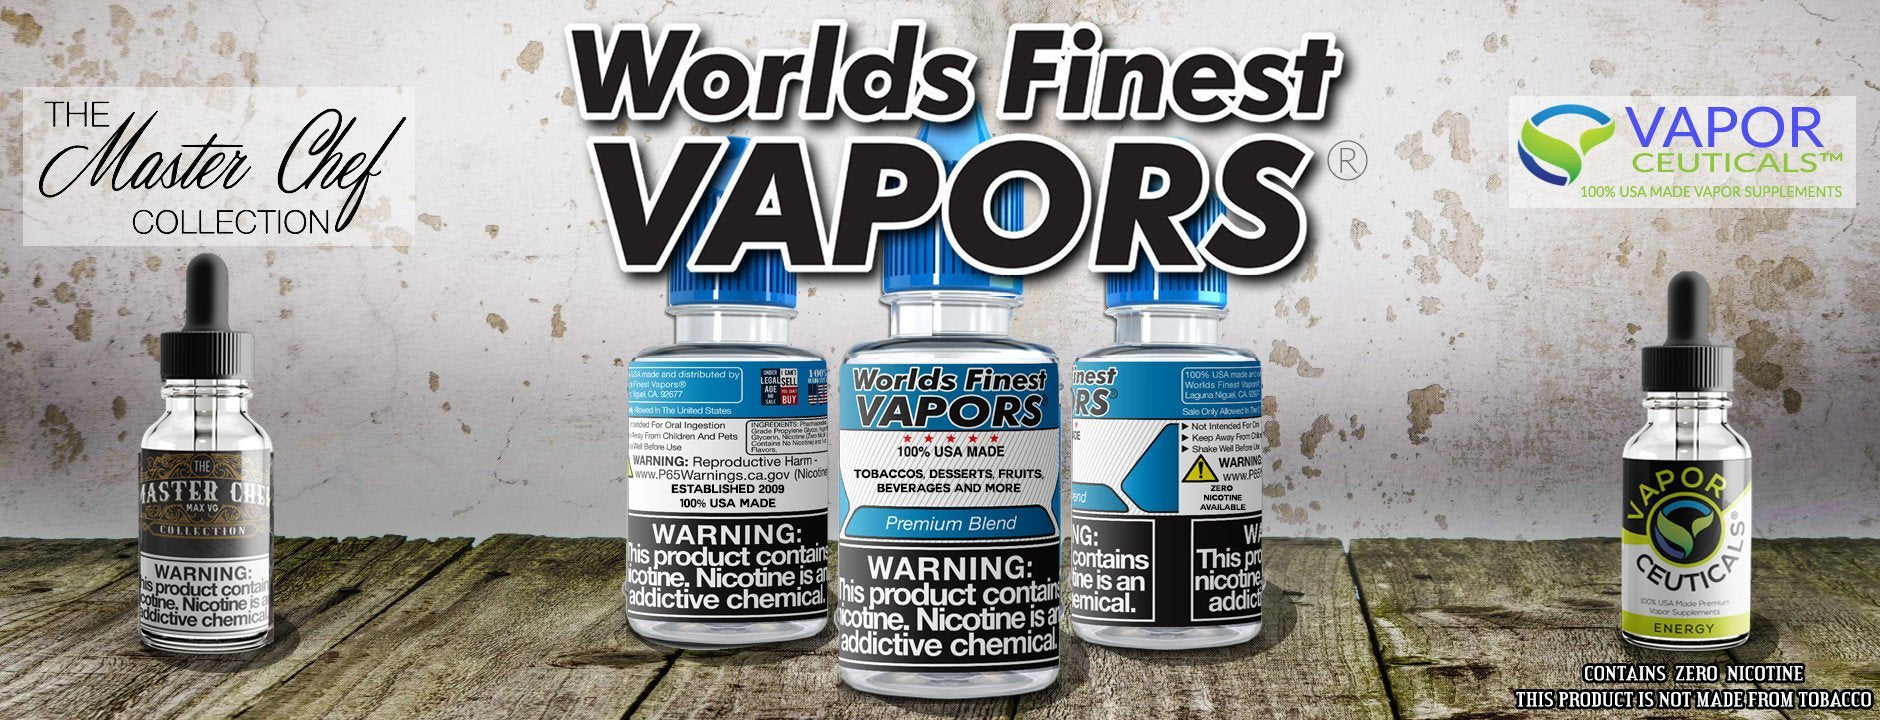 Worlds Finest Vapors | 100% USA Made Vape Juice